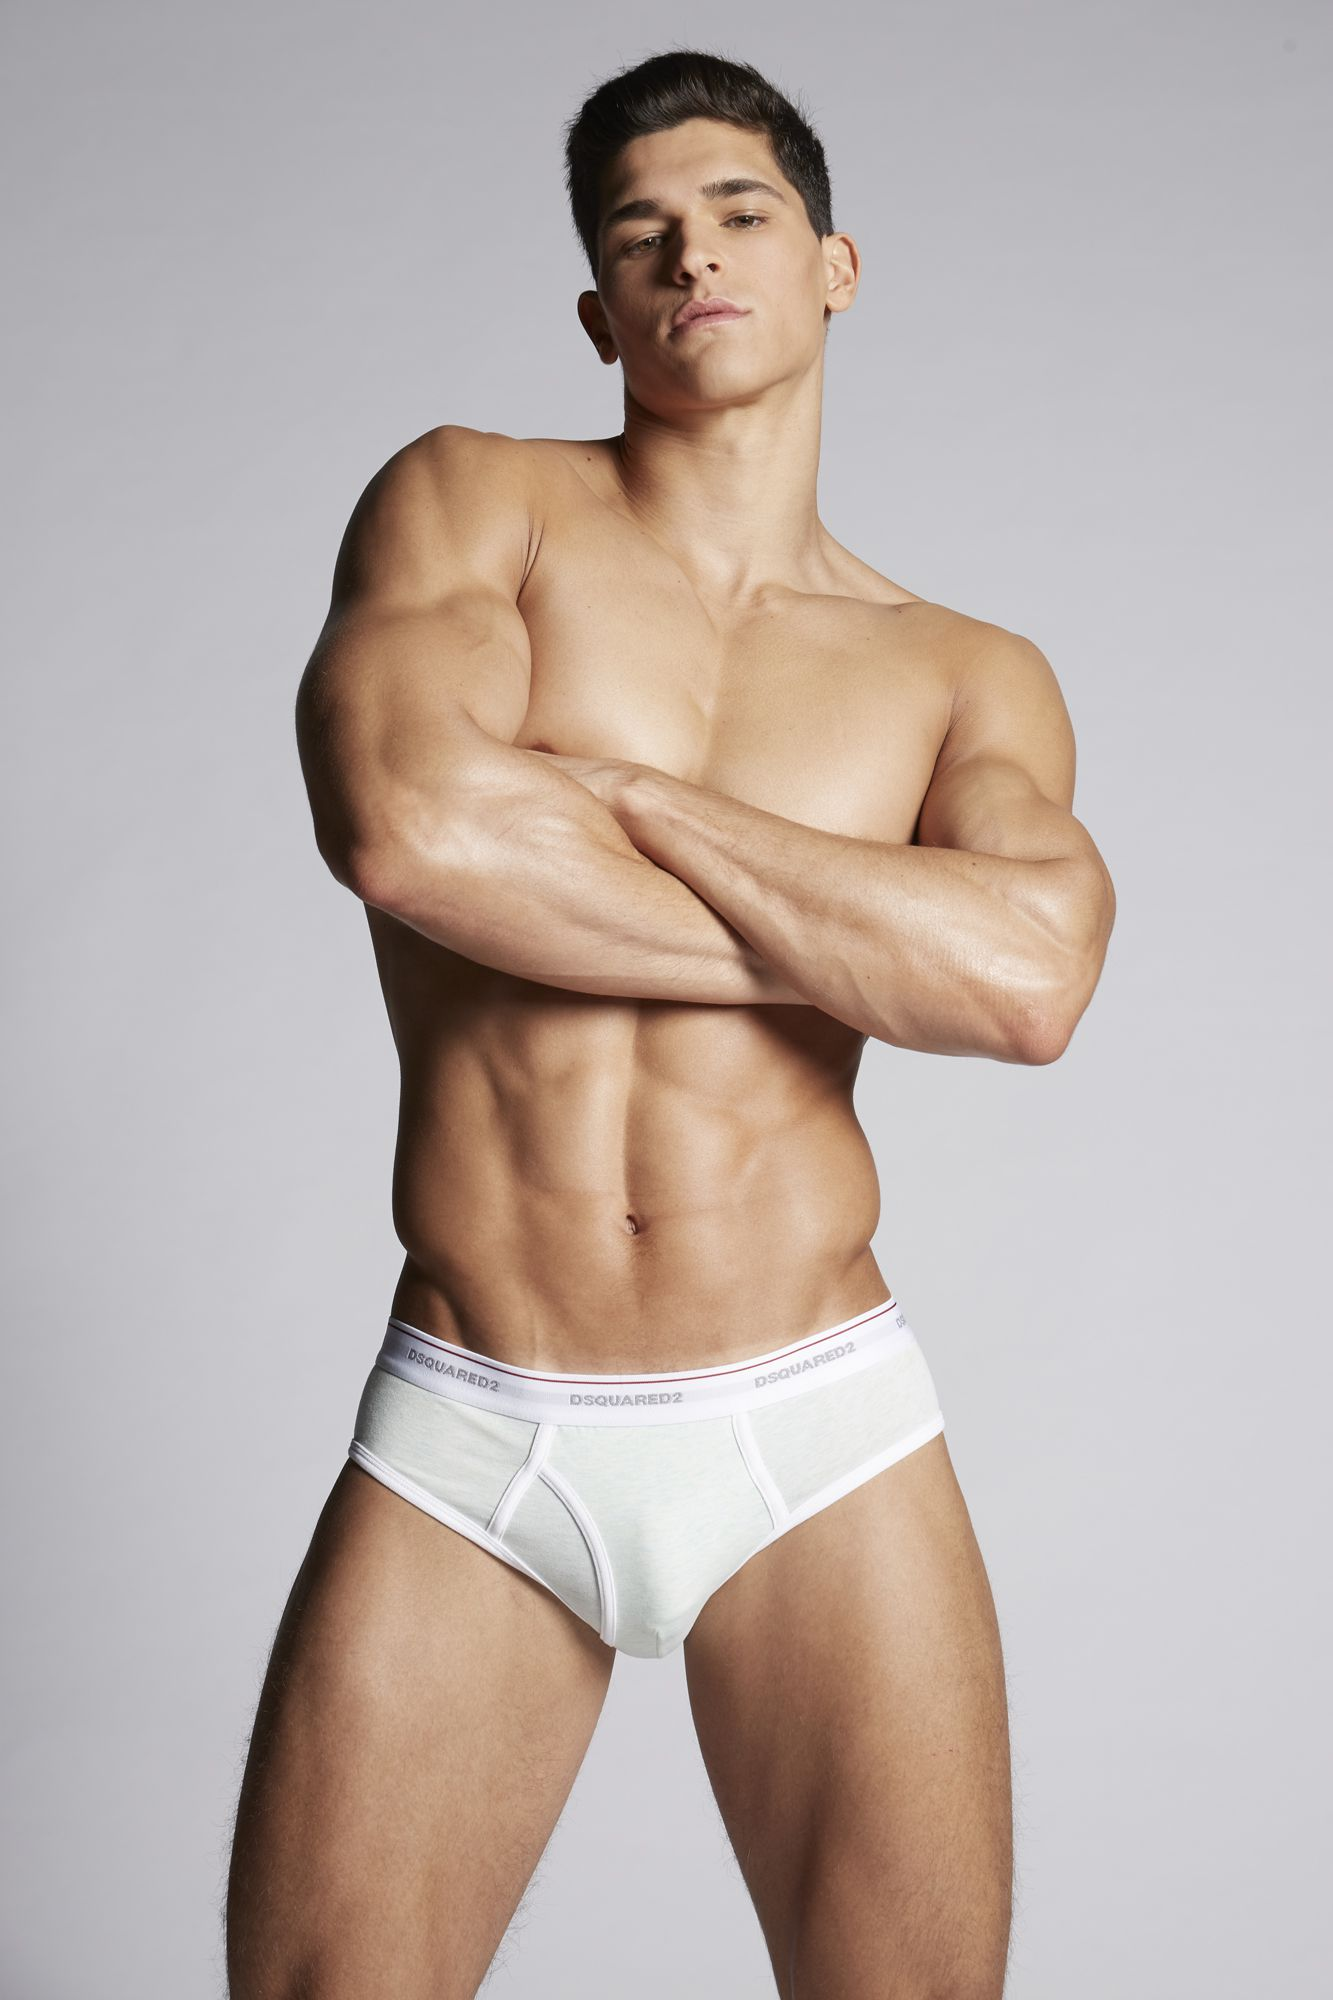 Dsquared briefs - £30 - Match your underwear to your suit